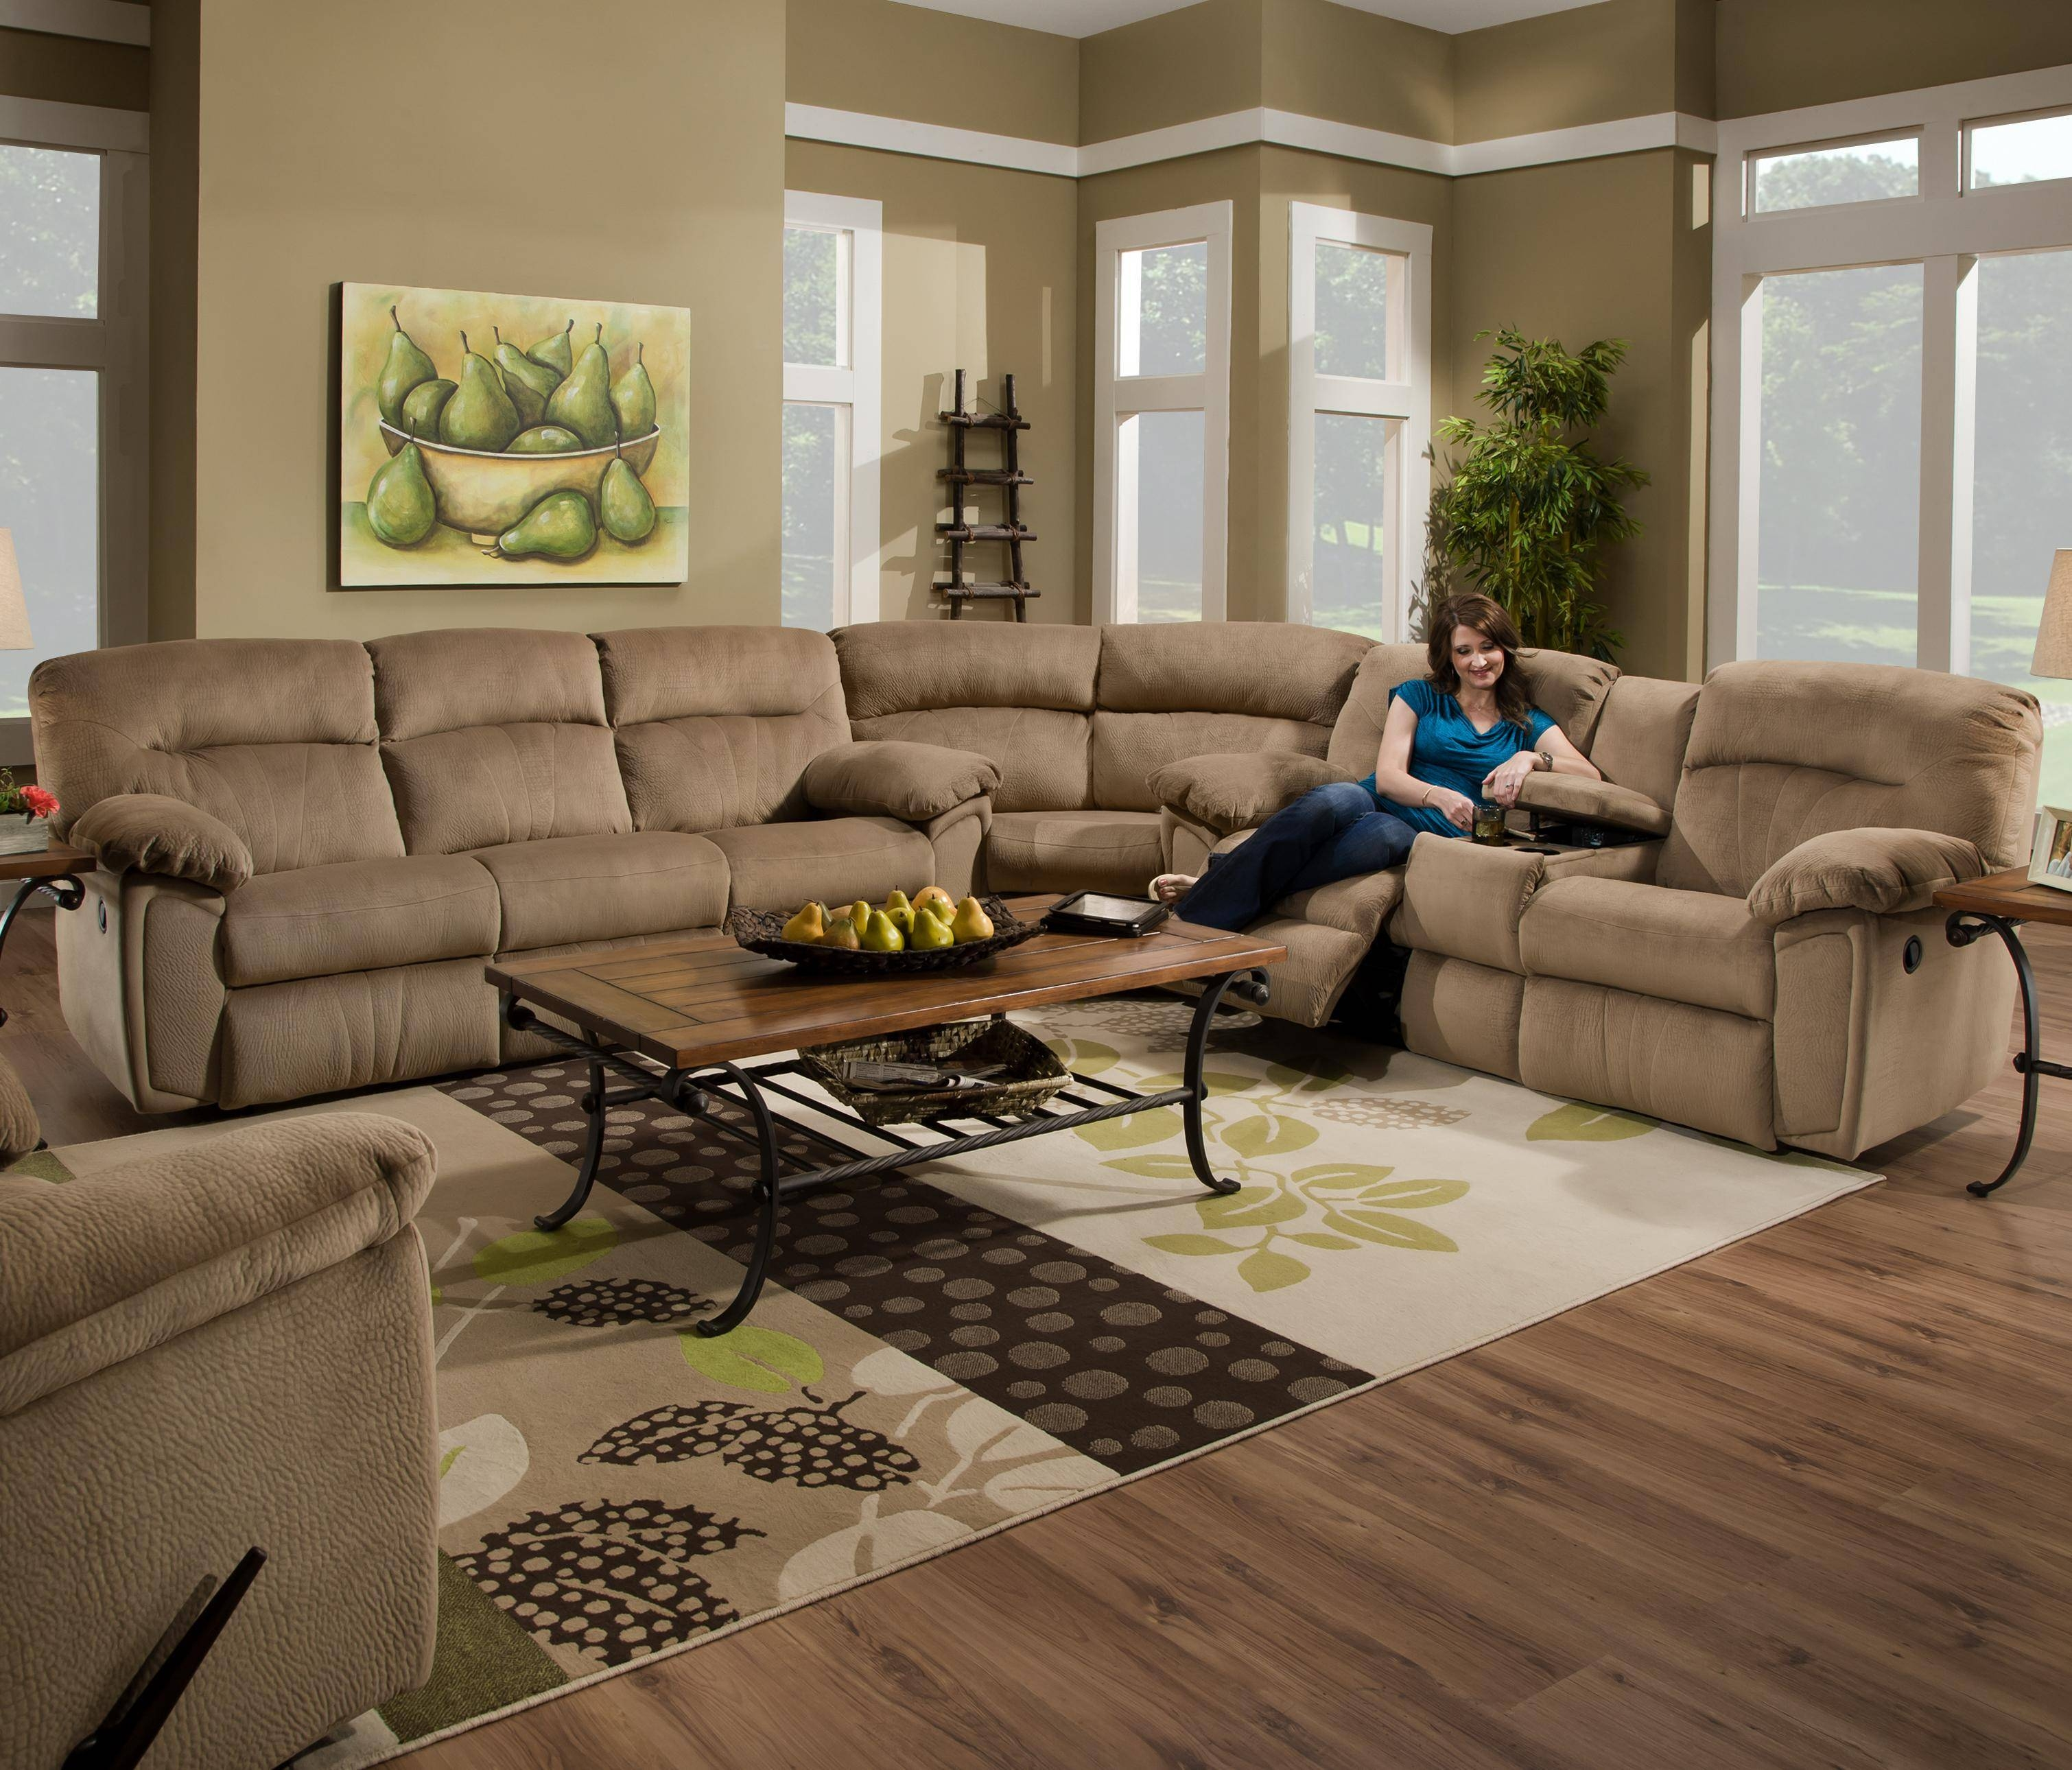 Astounding Sectional Sofas With Cup Holders 86 For European Style with European Style Sectional Sofas (Image 15 of 30)